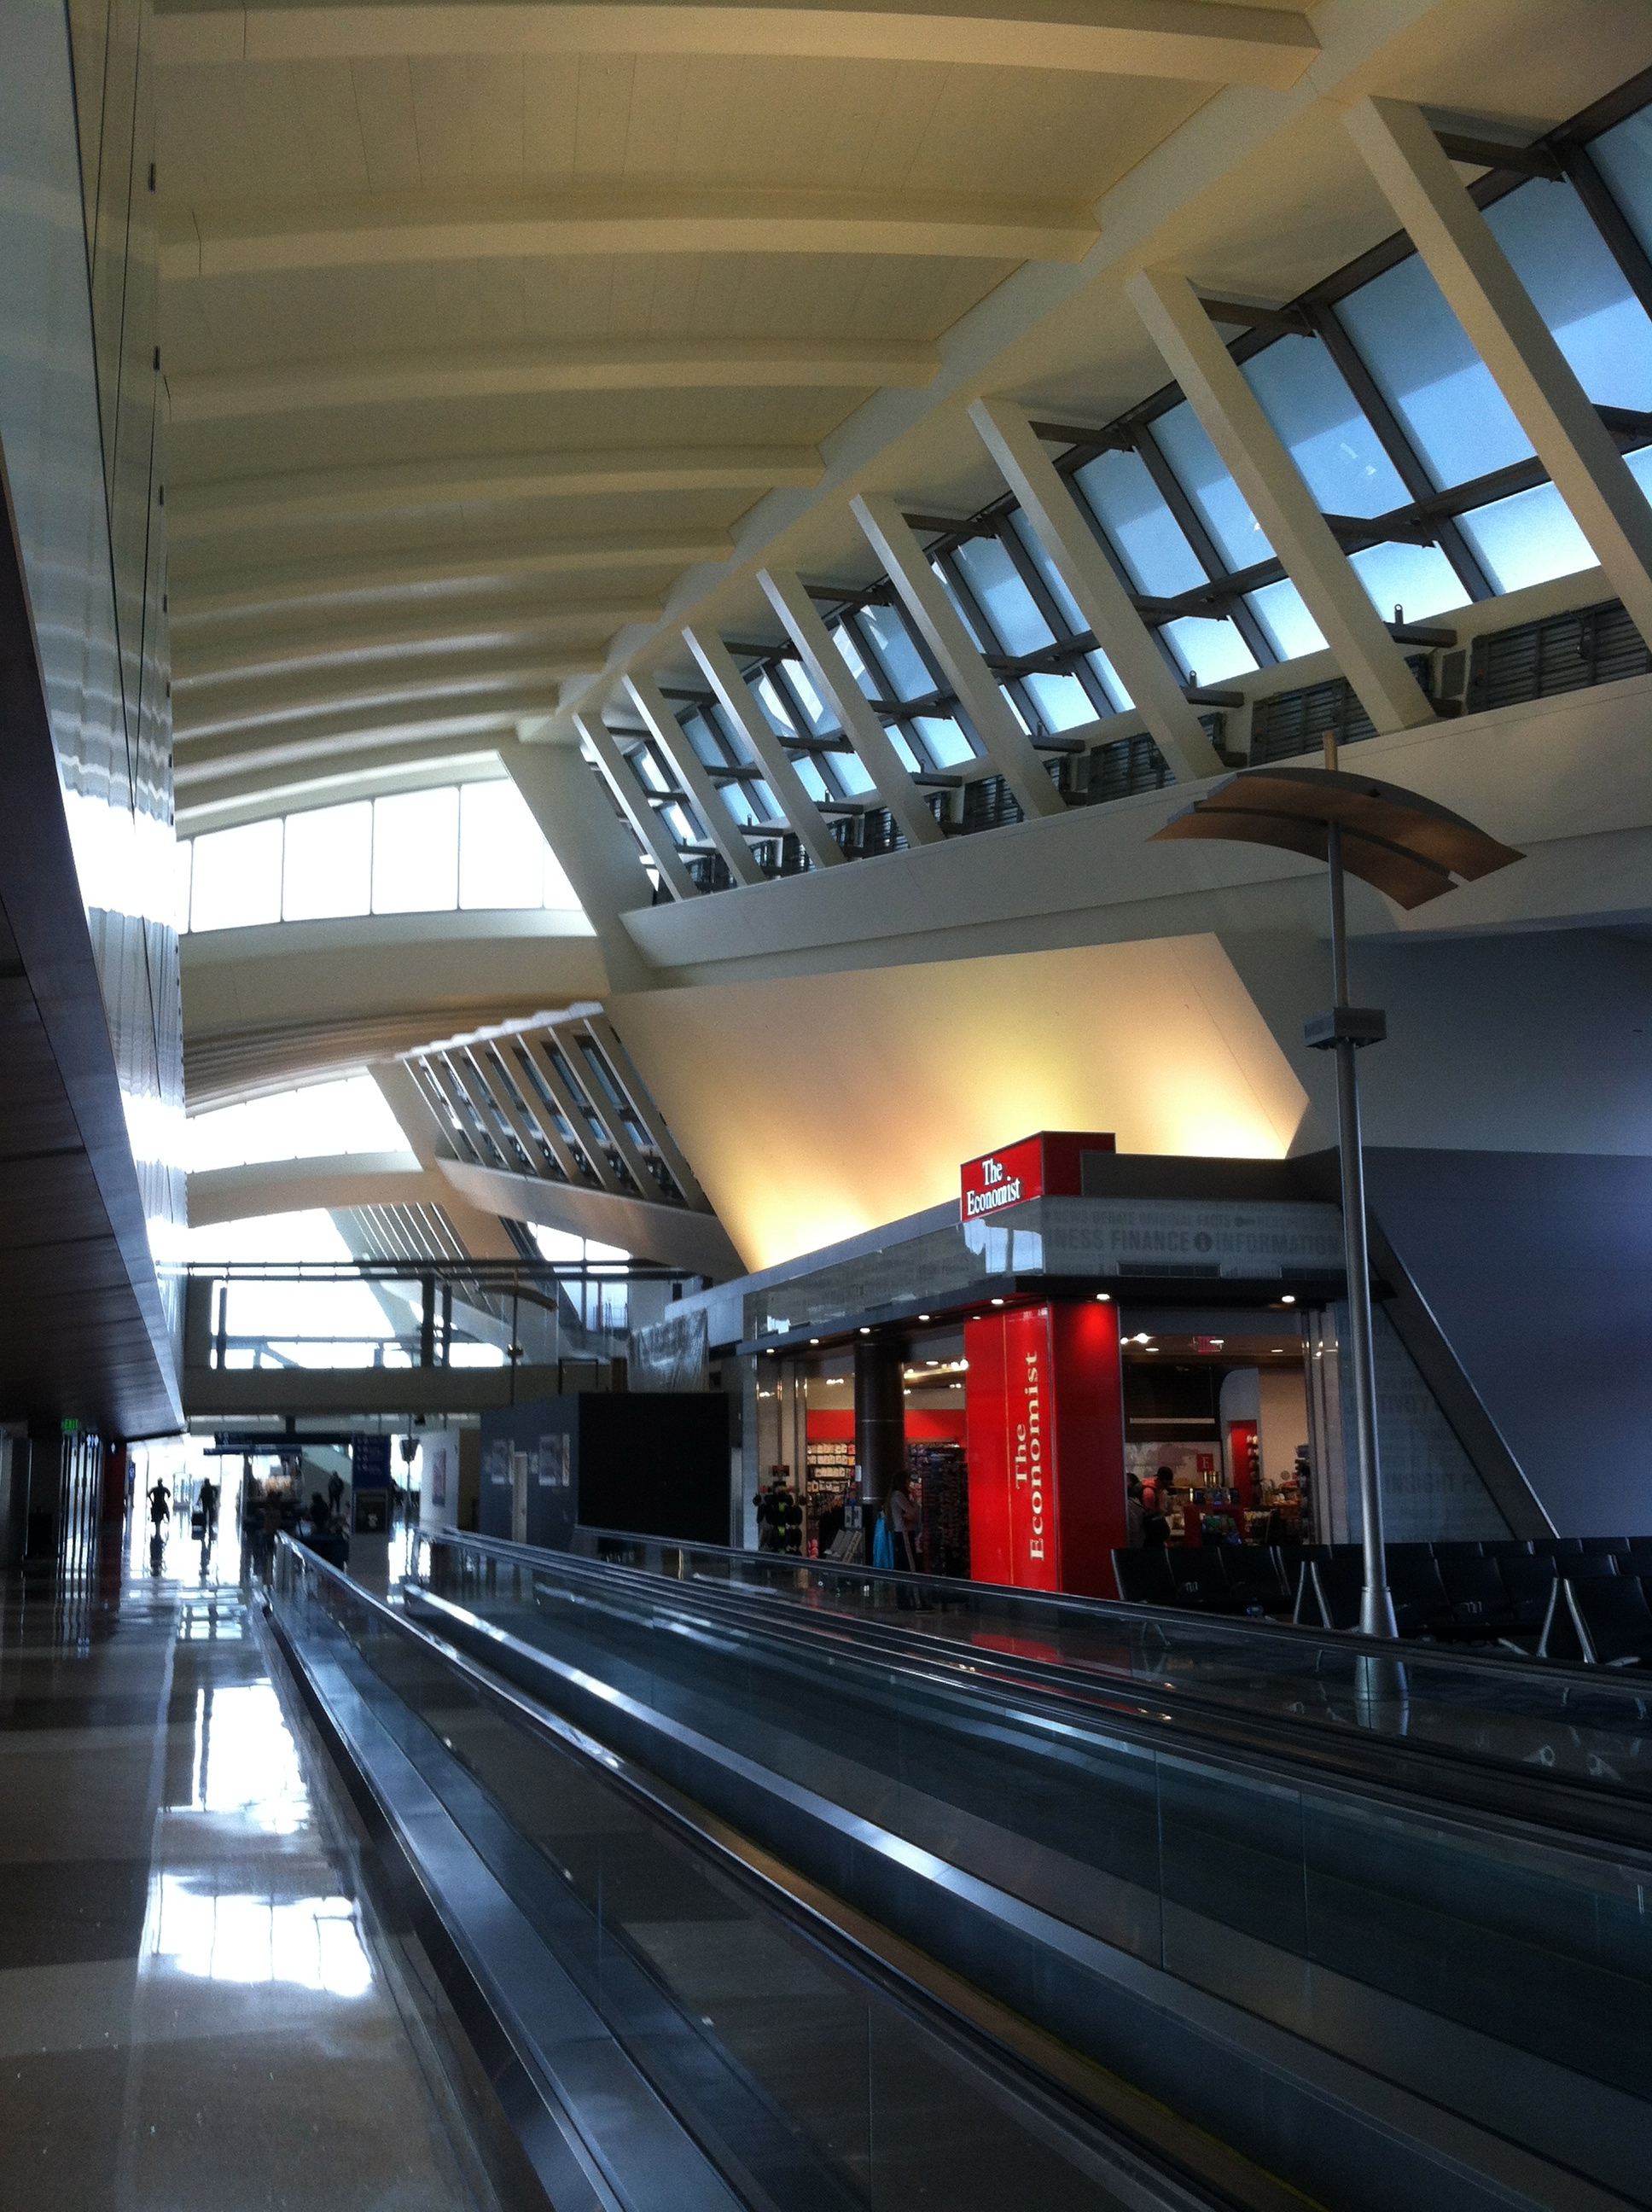 lax airport norwegian airlines terminal